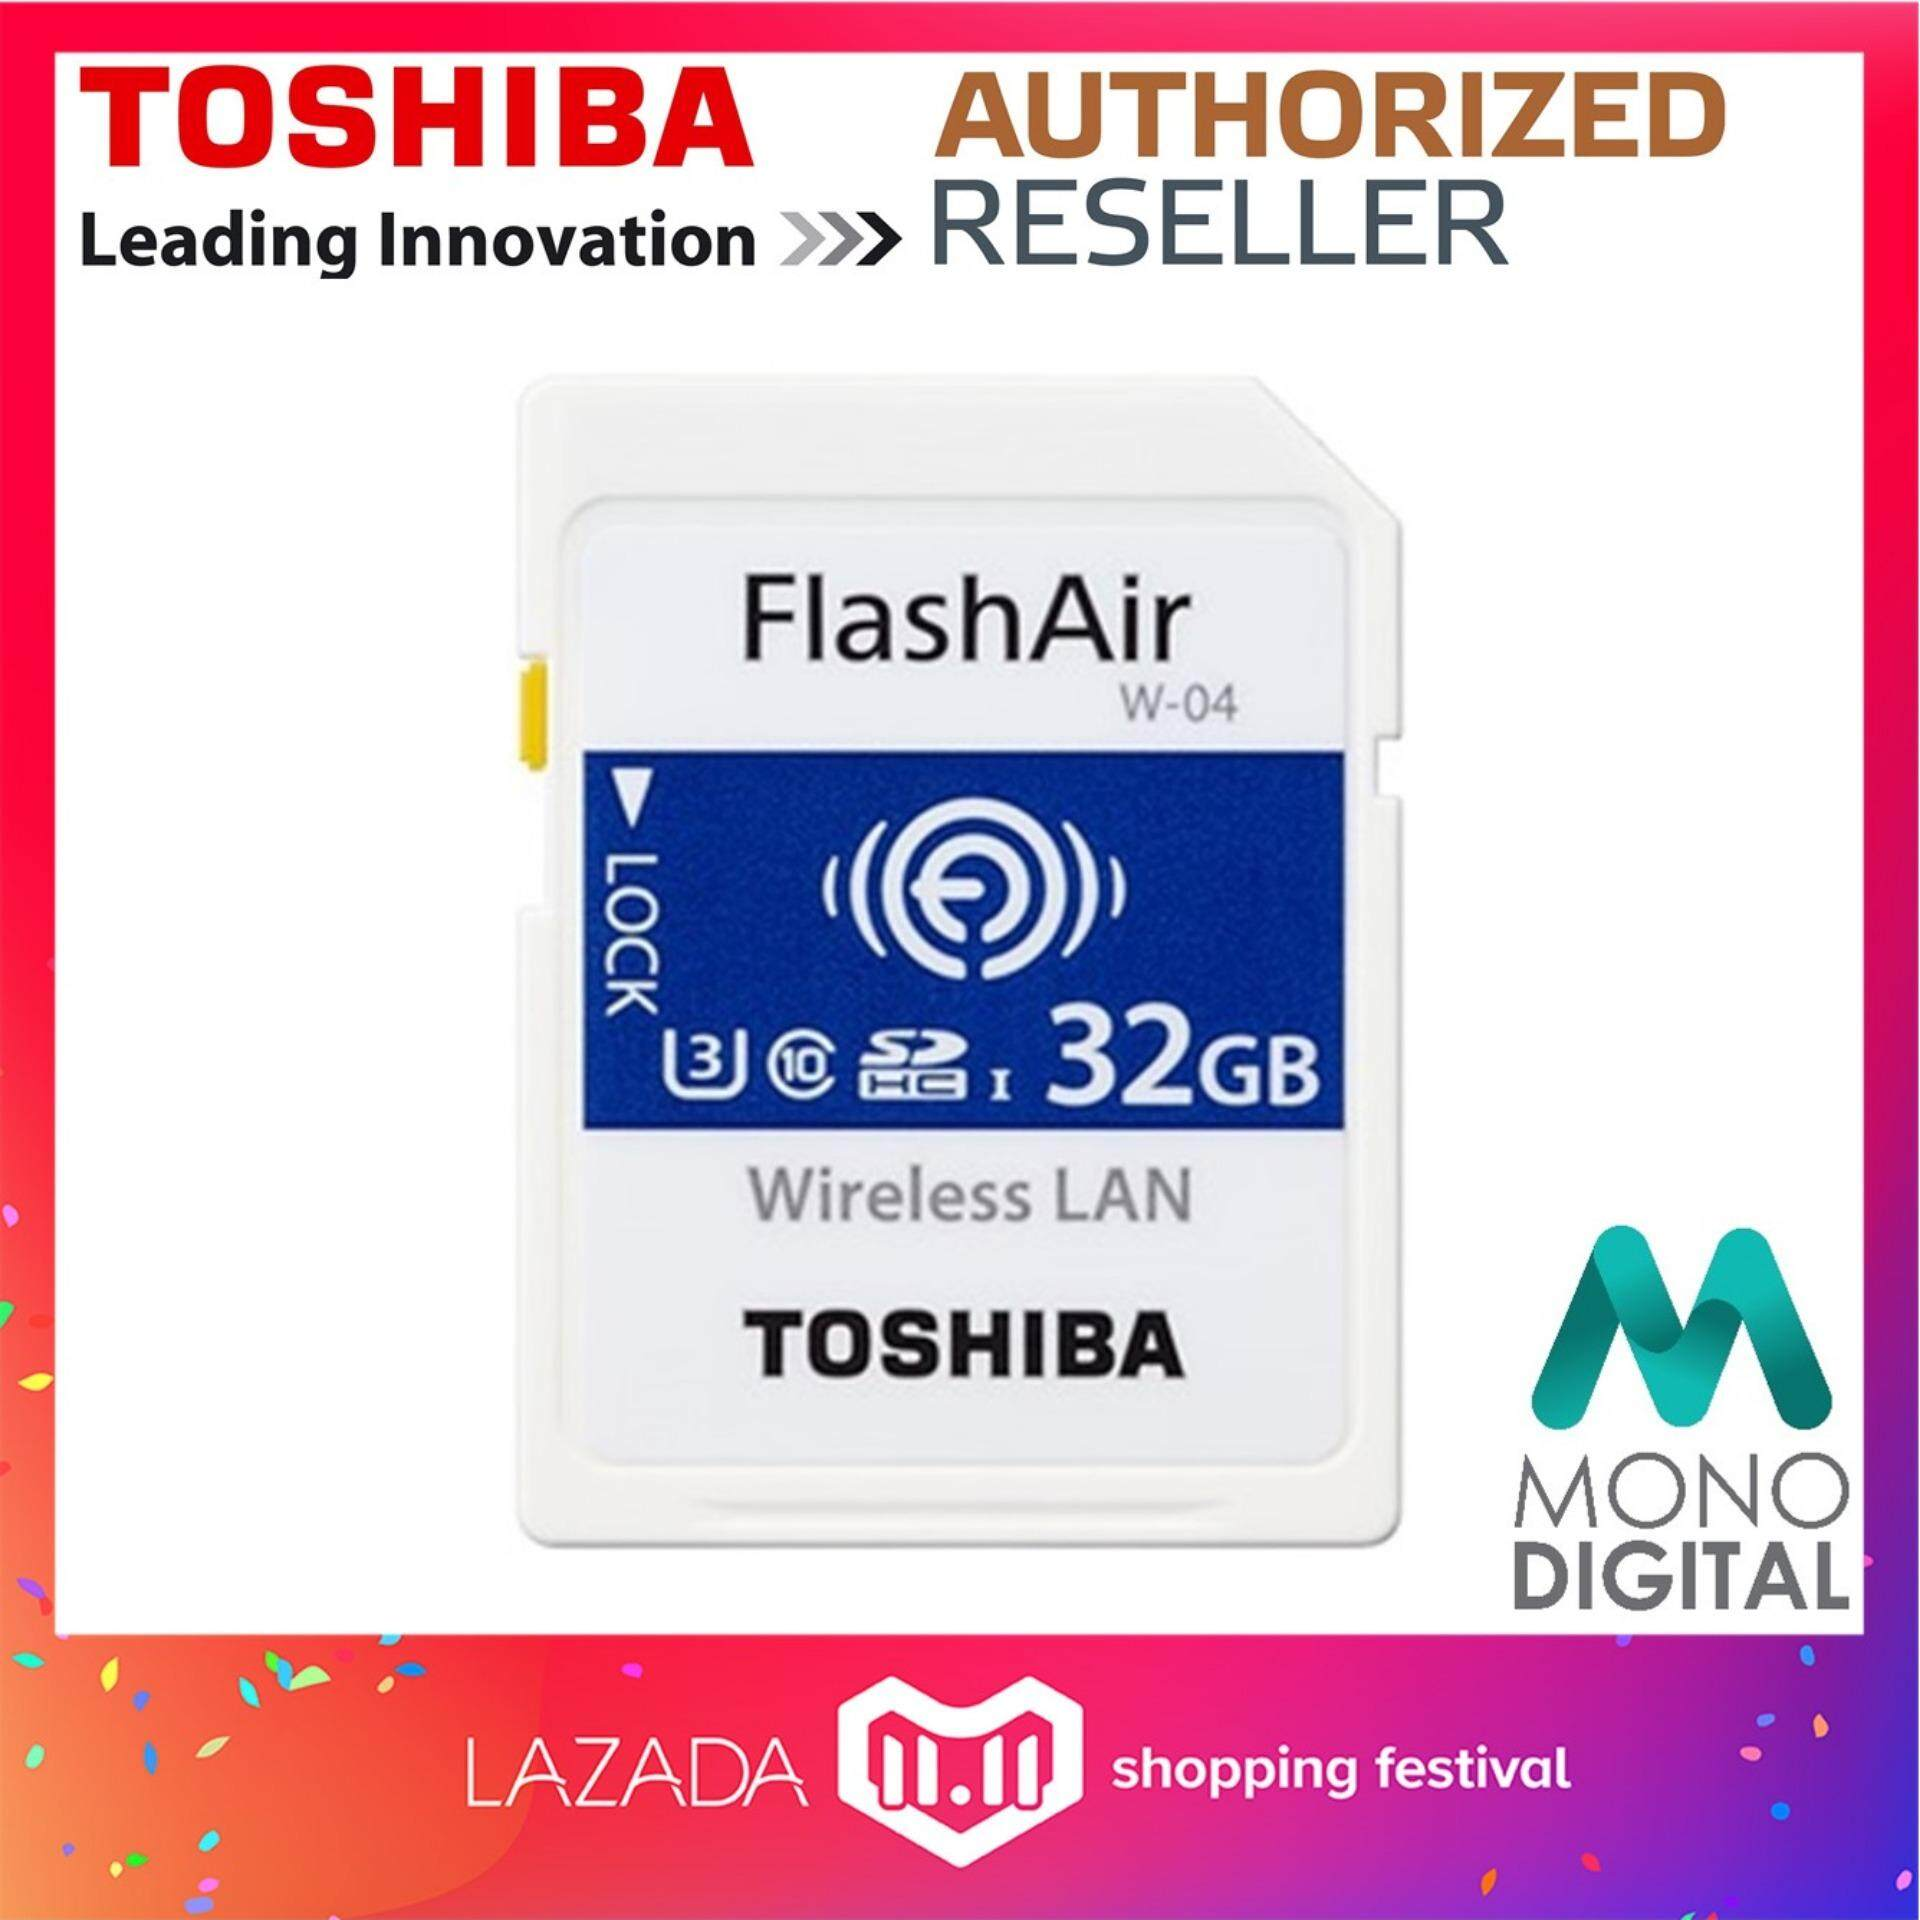 Memory Micro Sd Card With Best Price At Lazada Malaysia Mmc Toshiba 8gb Flashair 32gb Iv Wireless Wifi Class 10 W 04